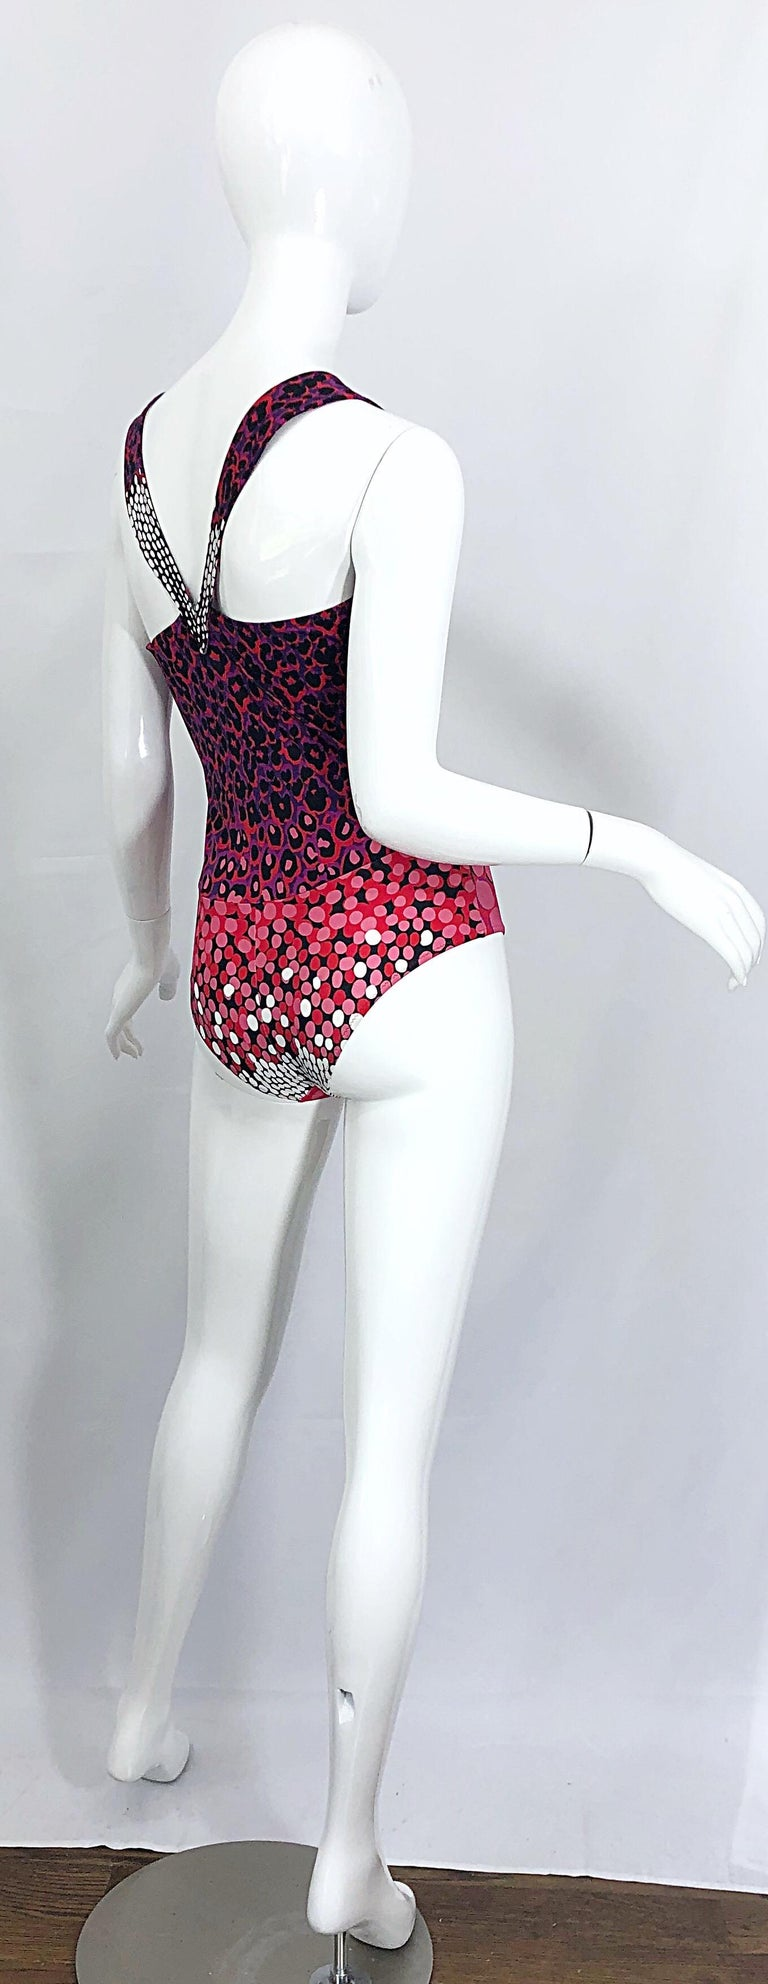 New Yves Saint Laurent Leopard Polka Dot Purple Red One Piece Swimsuit Bodysuit For Sale 1